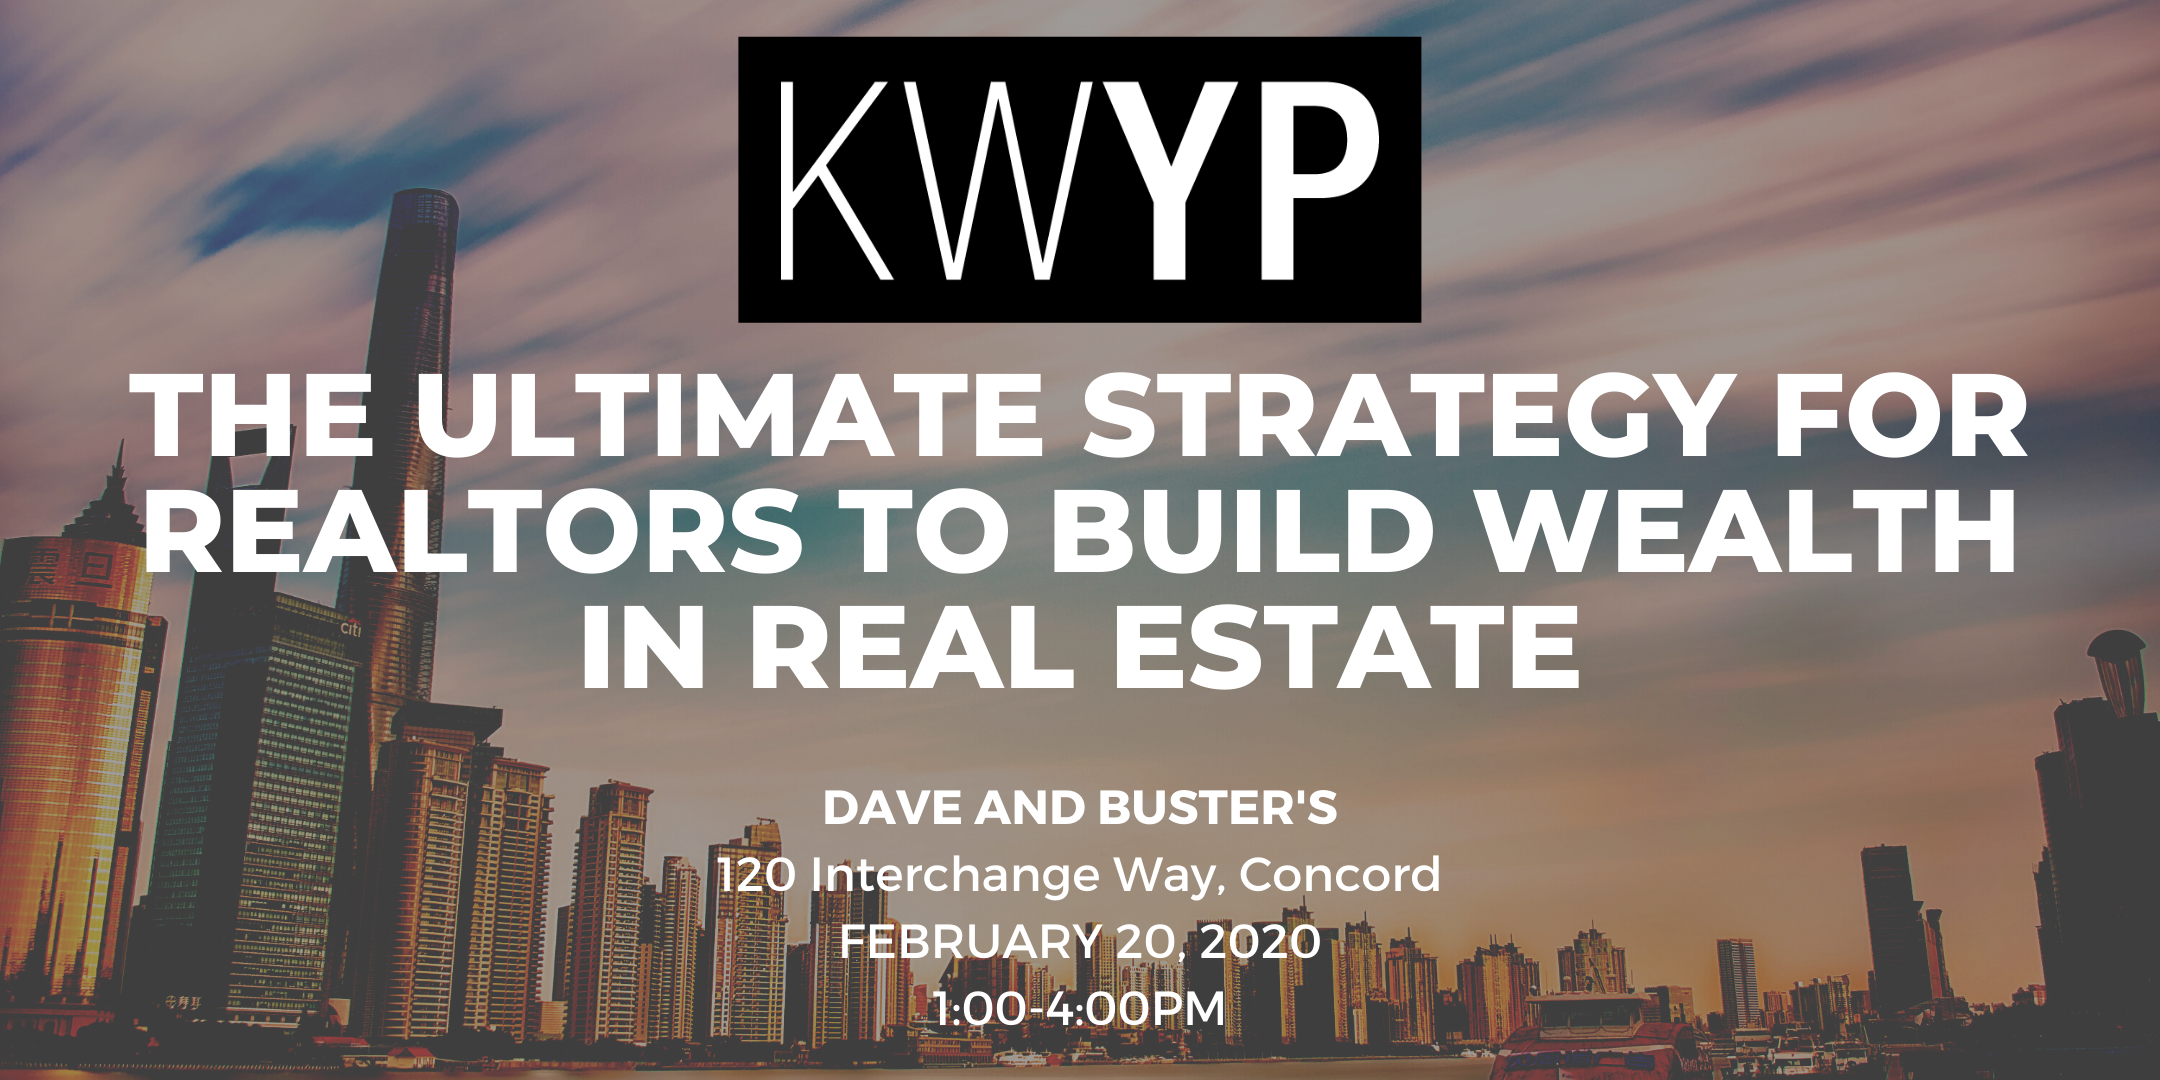 The Ultimate Strategy for Realtors to Build Wealth in Real Estate